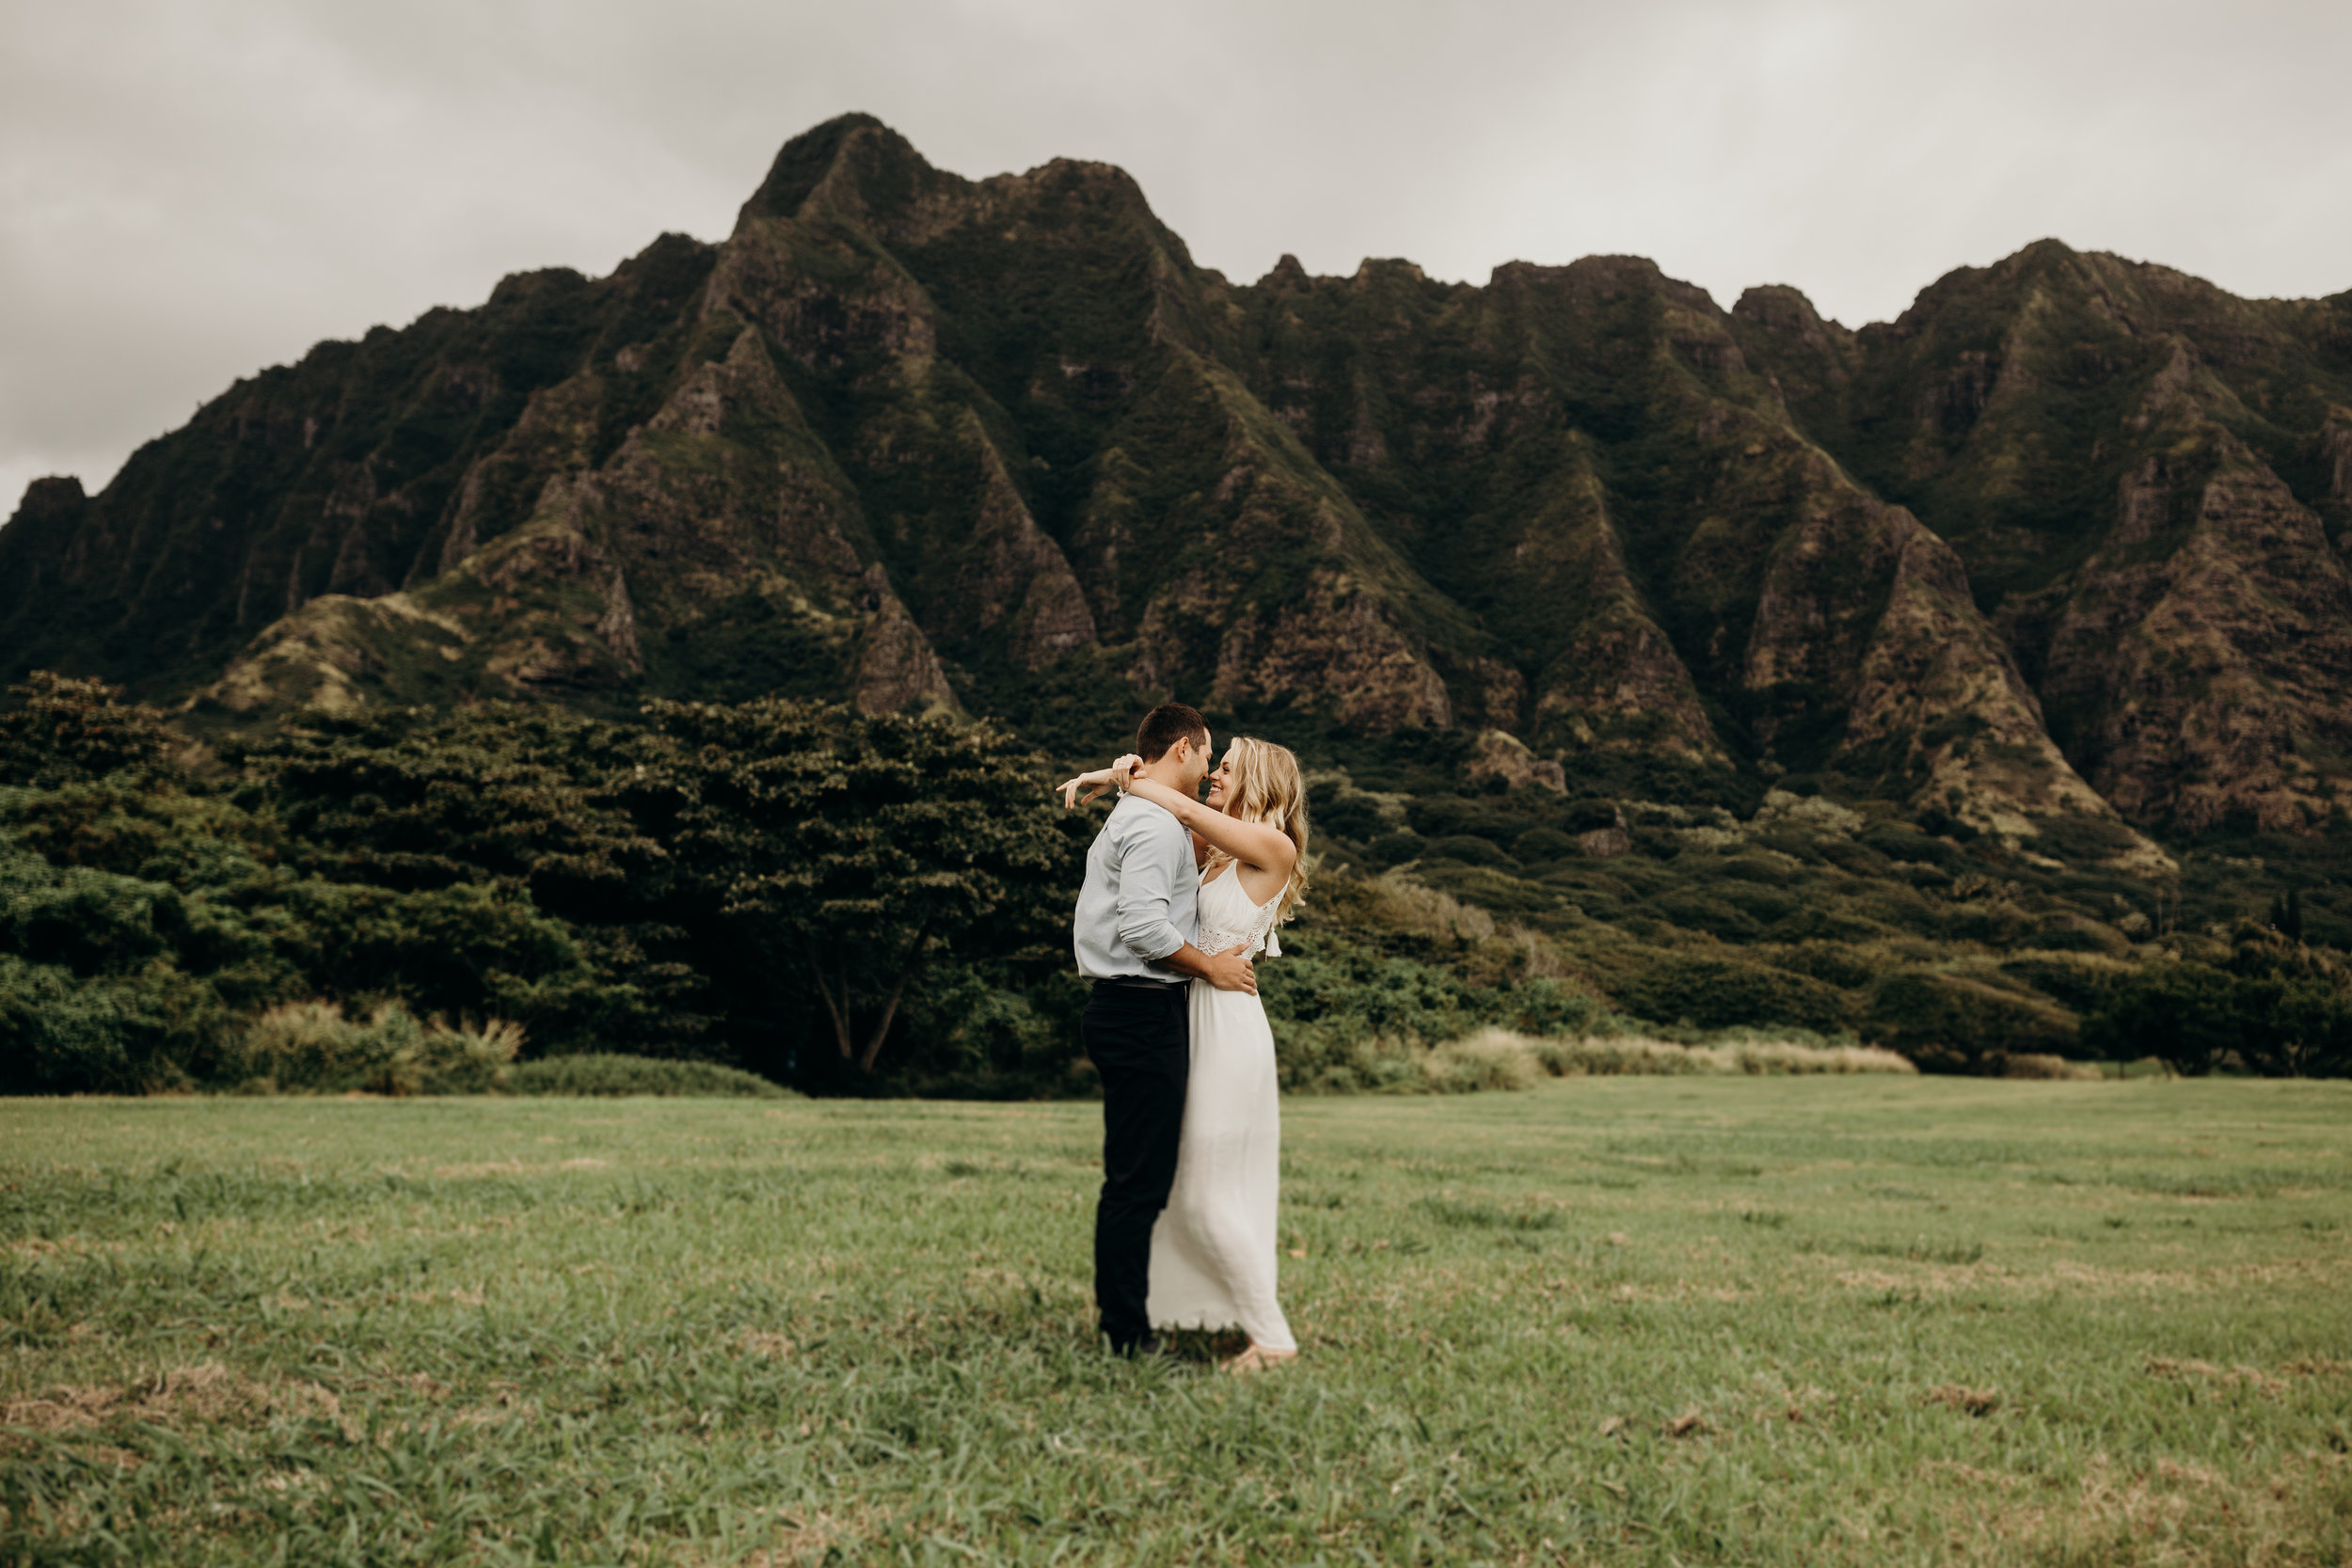 hawaii-engagement-photographer-keani-bakula-kualoa-ranch-3.jpg